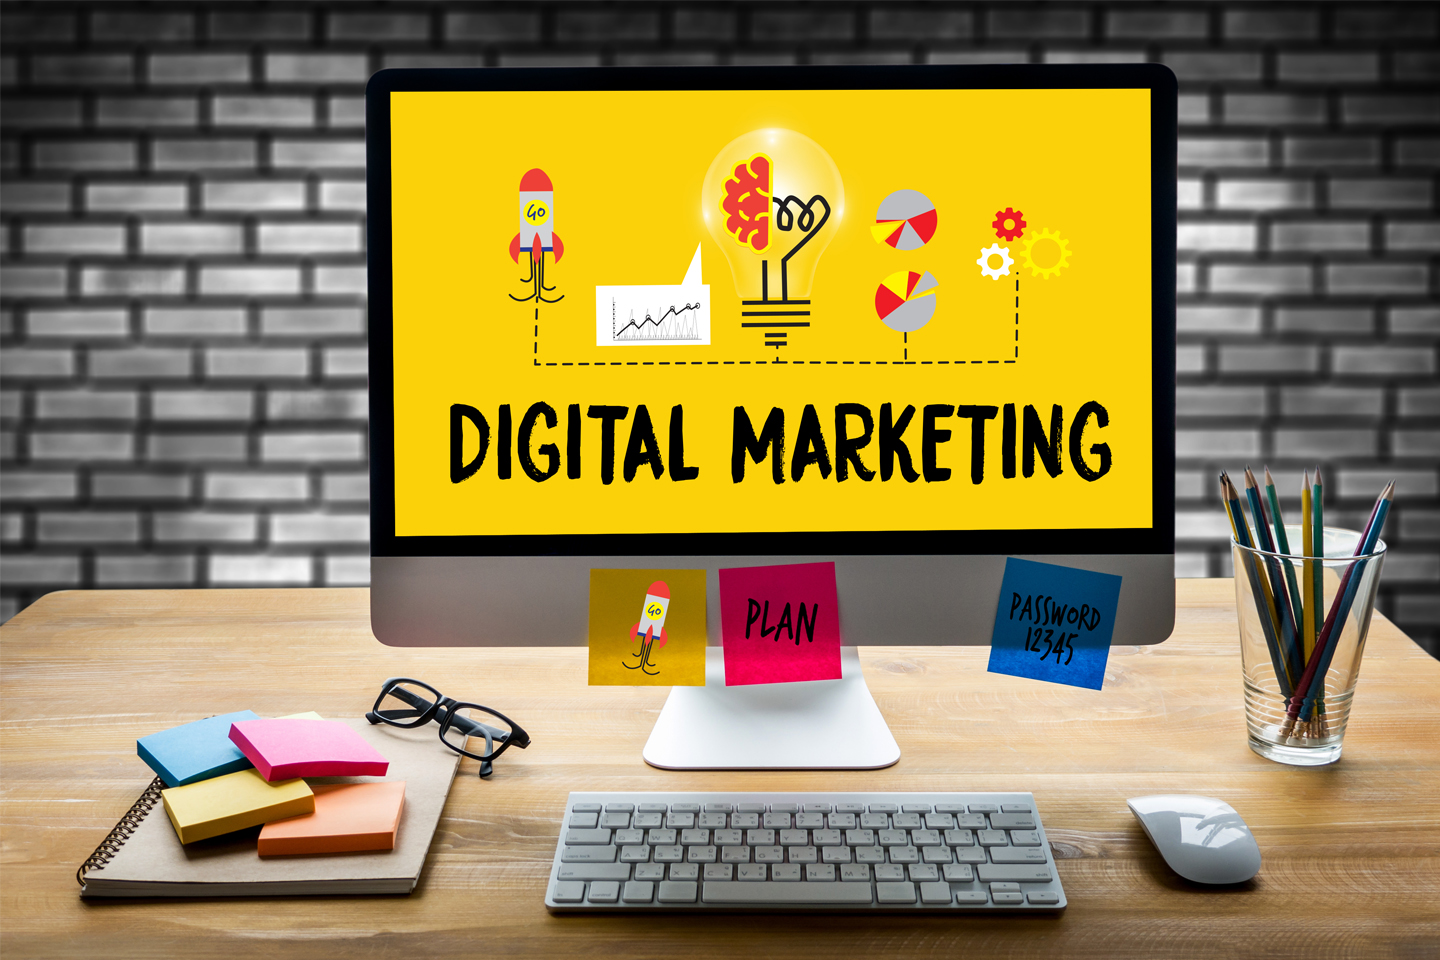 5 tips to drive new business through digital marketing | Business News